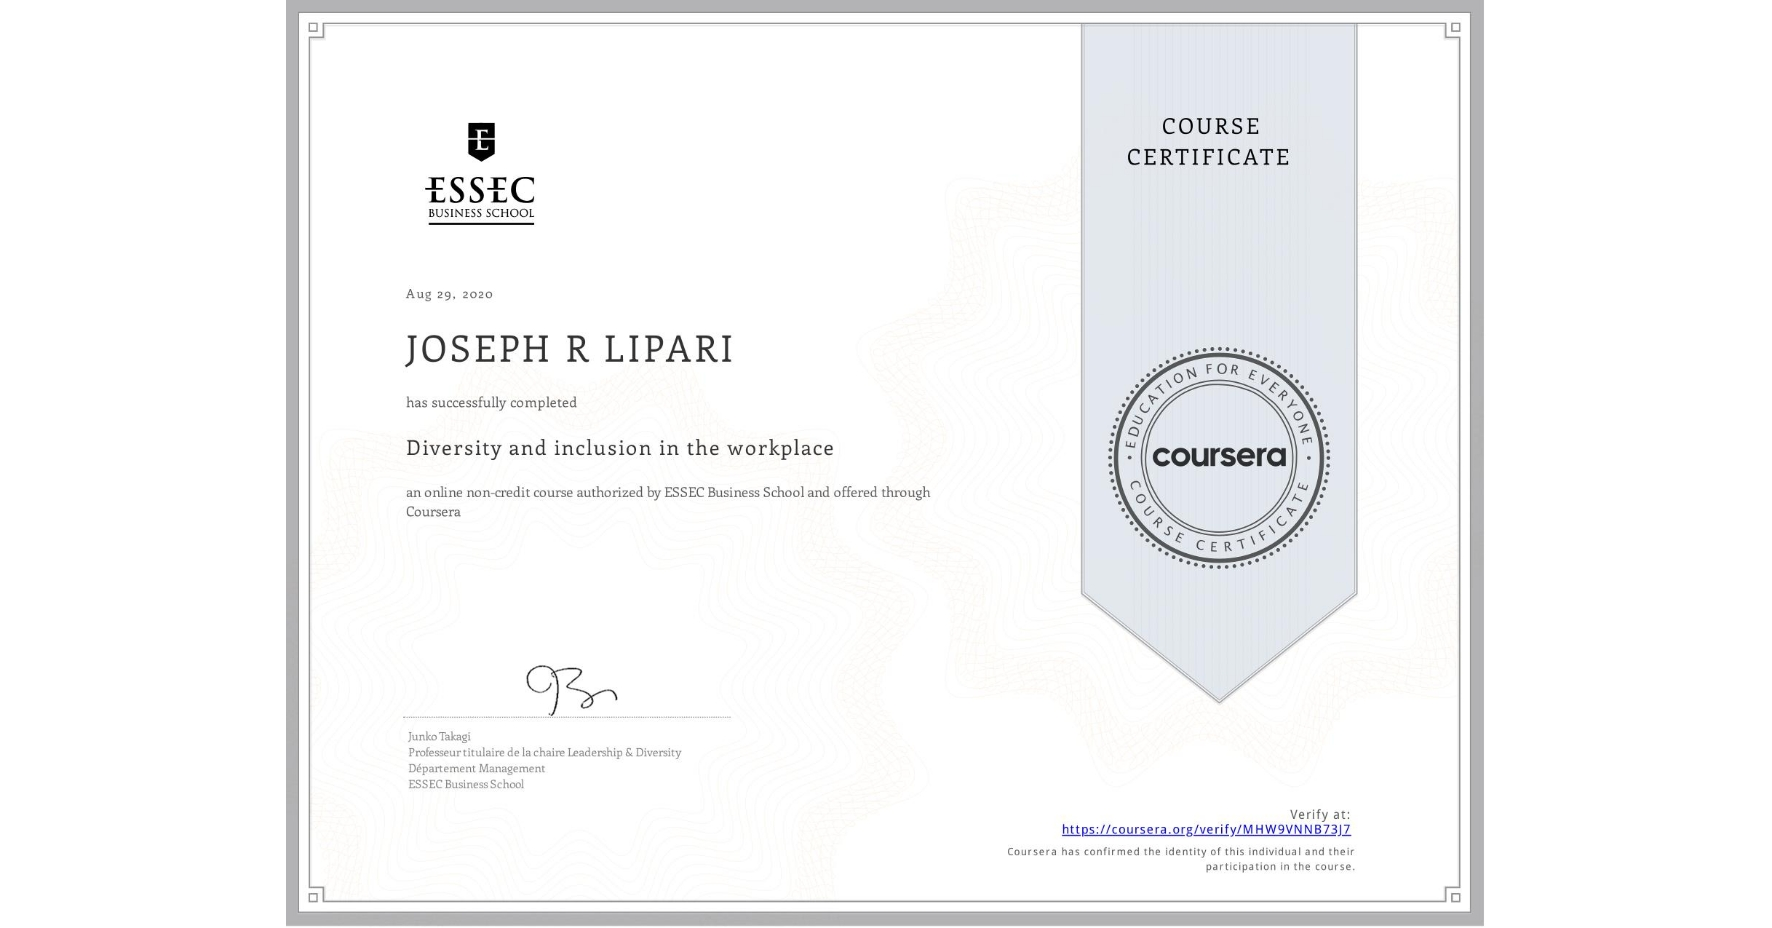 View certificate for JOSEPH R  LIPARI, Diversity and inclusion in the workplace, an online non-credit course authorized by ESSEC Business School and offered through Coursera